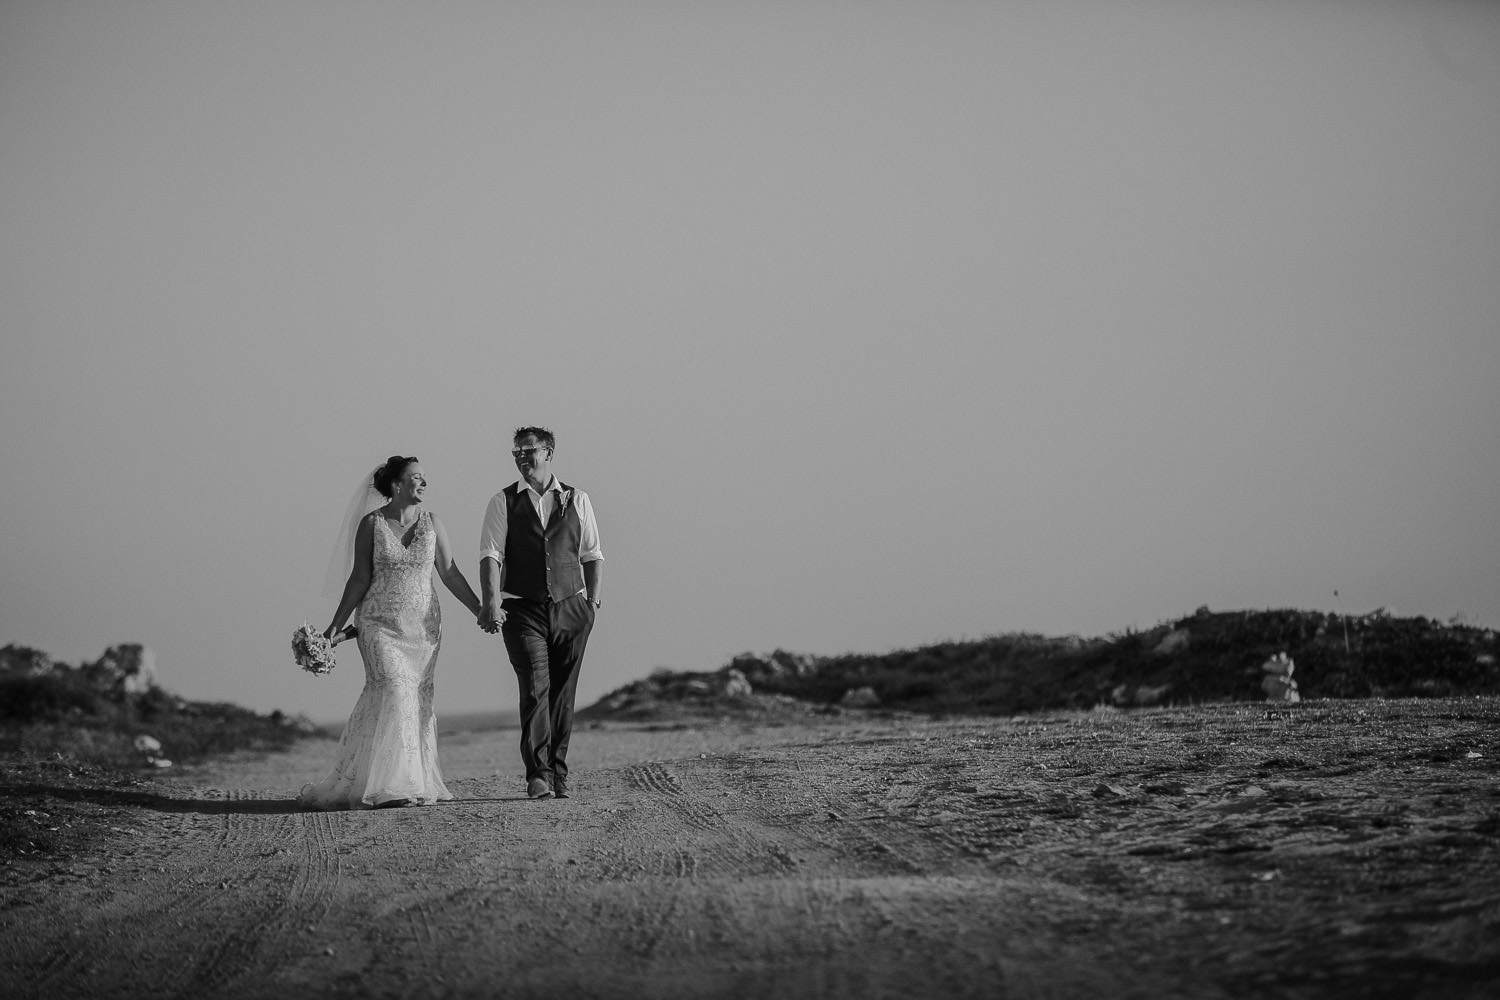 Bride and groom holding hands walking down dirt road in Paphos cyprus